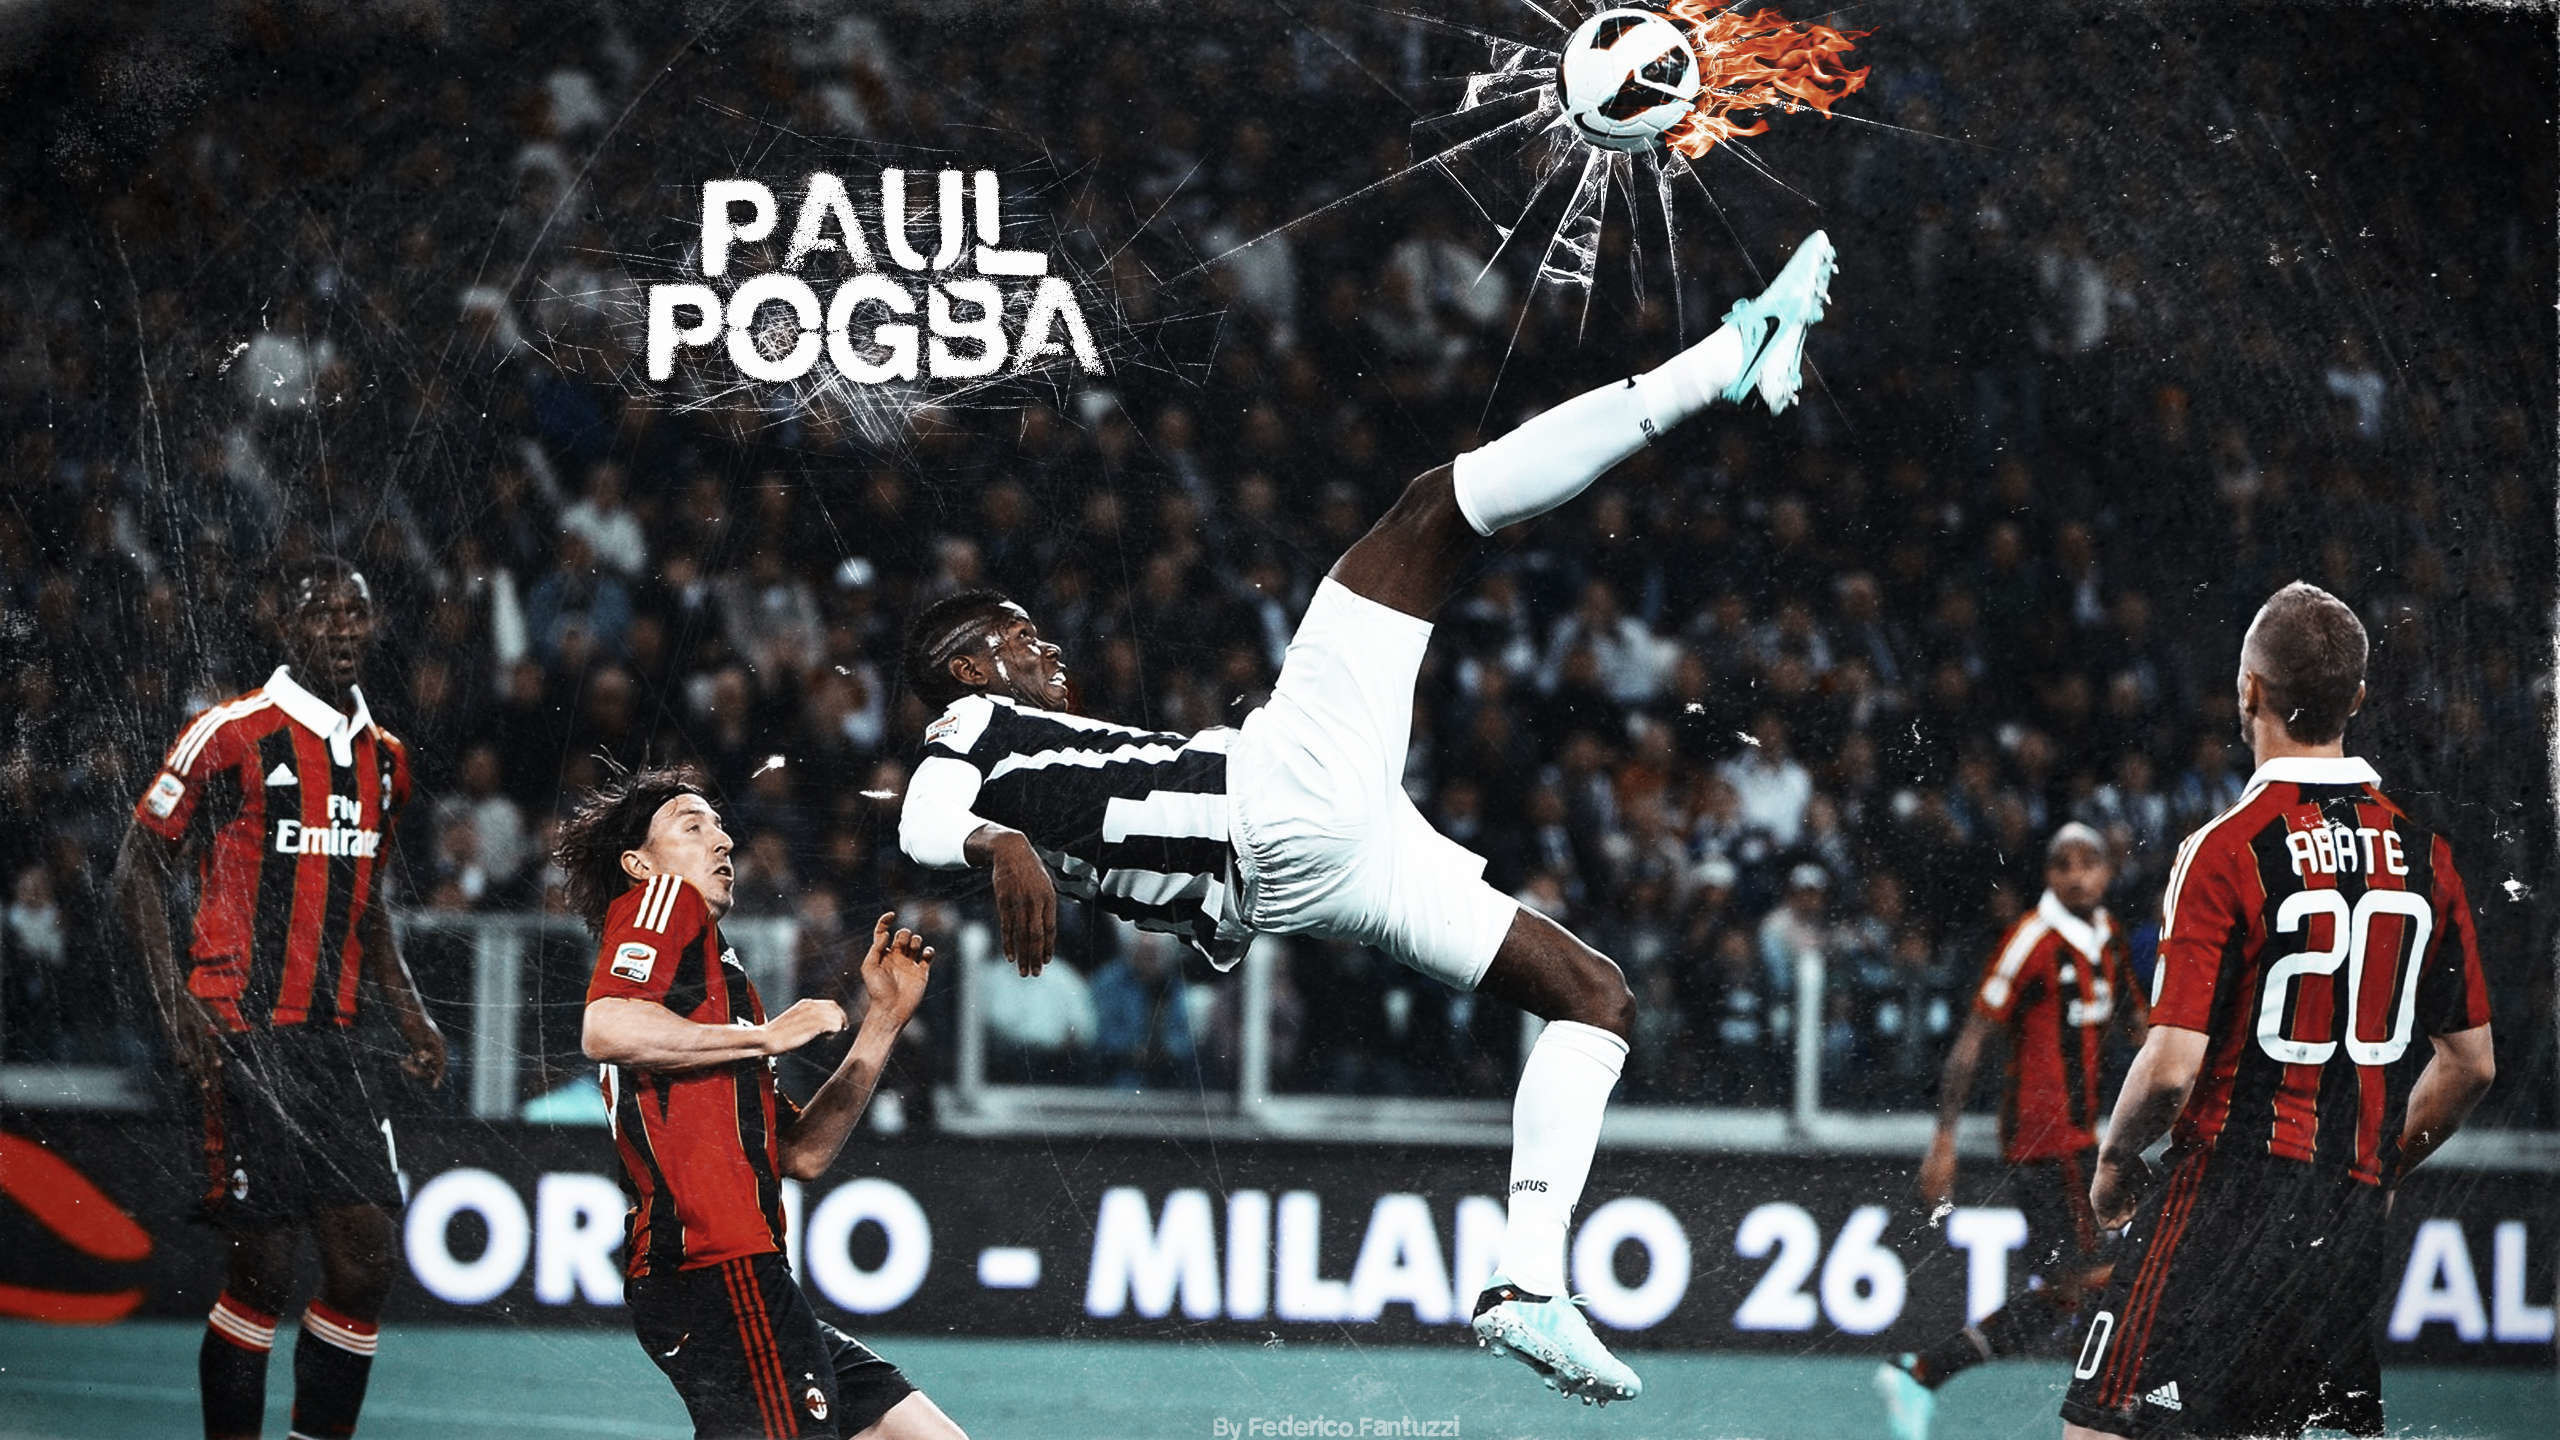 Res: 2560x1440, Paul-pogba-hd-wallpapers-8.jpg ...